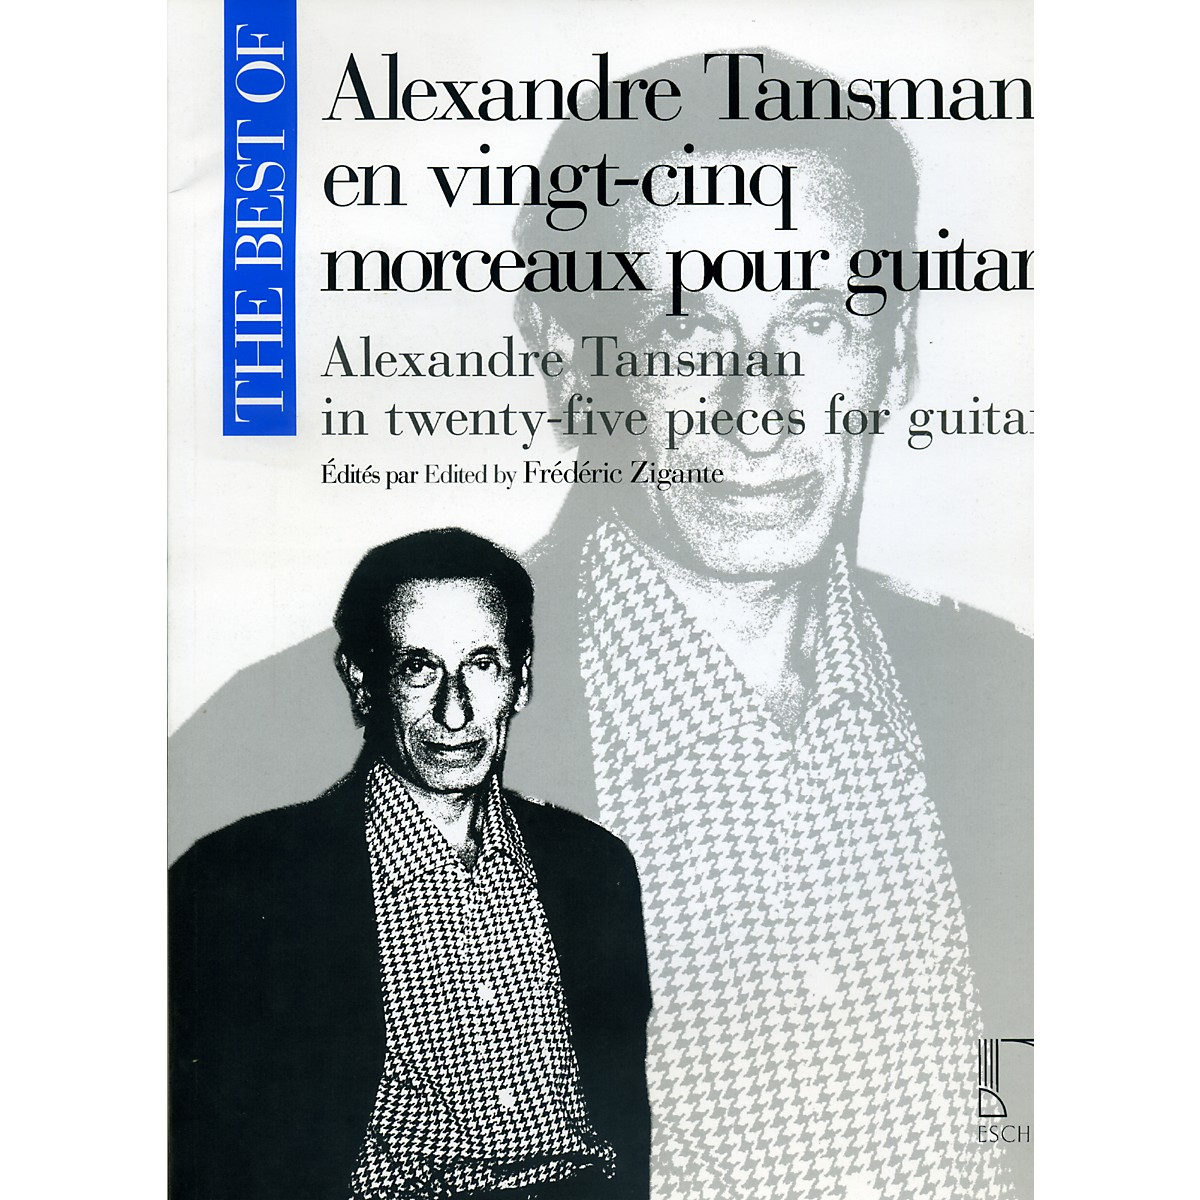 Durand The Best Of Alexandre Tansman In Twenty-Five Pieces For Guitar